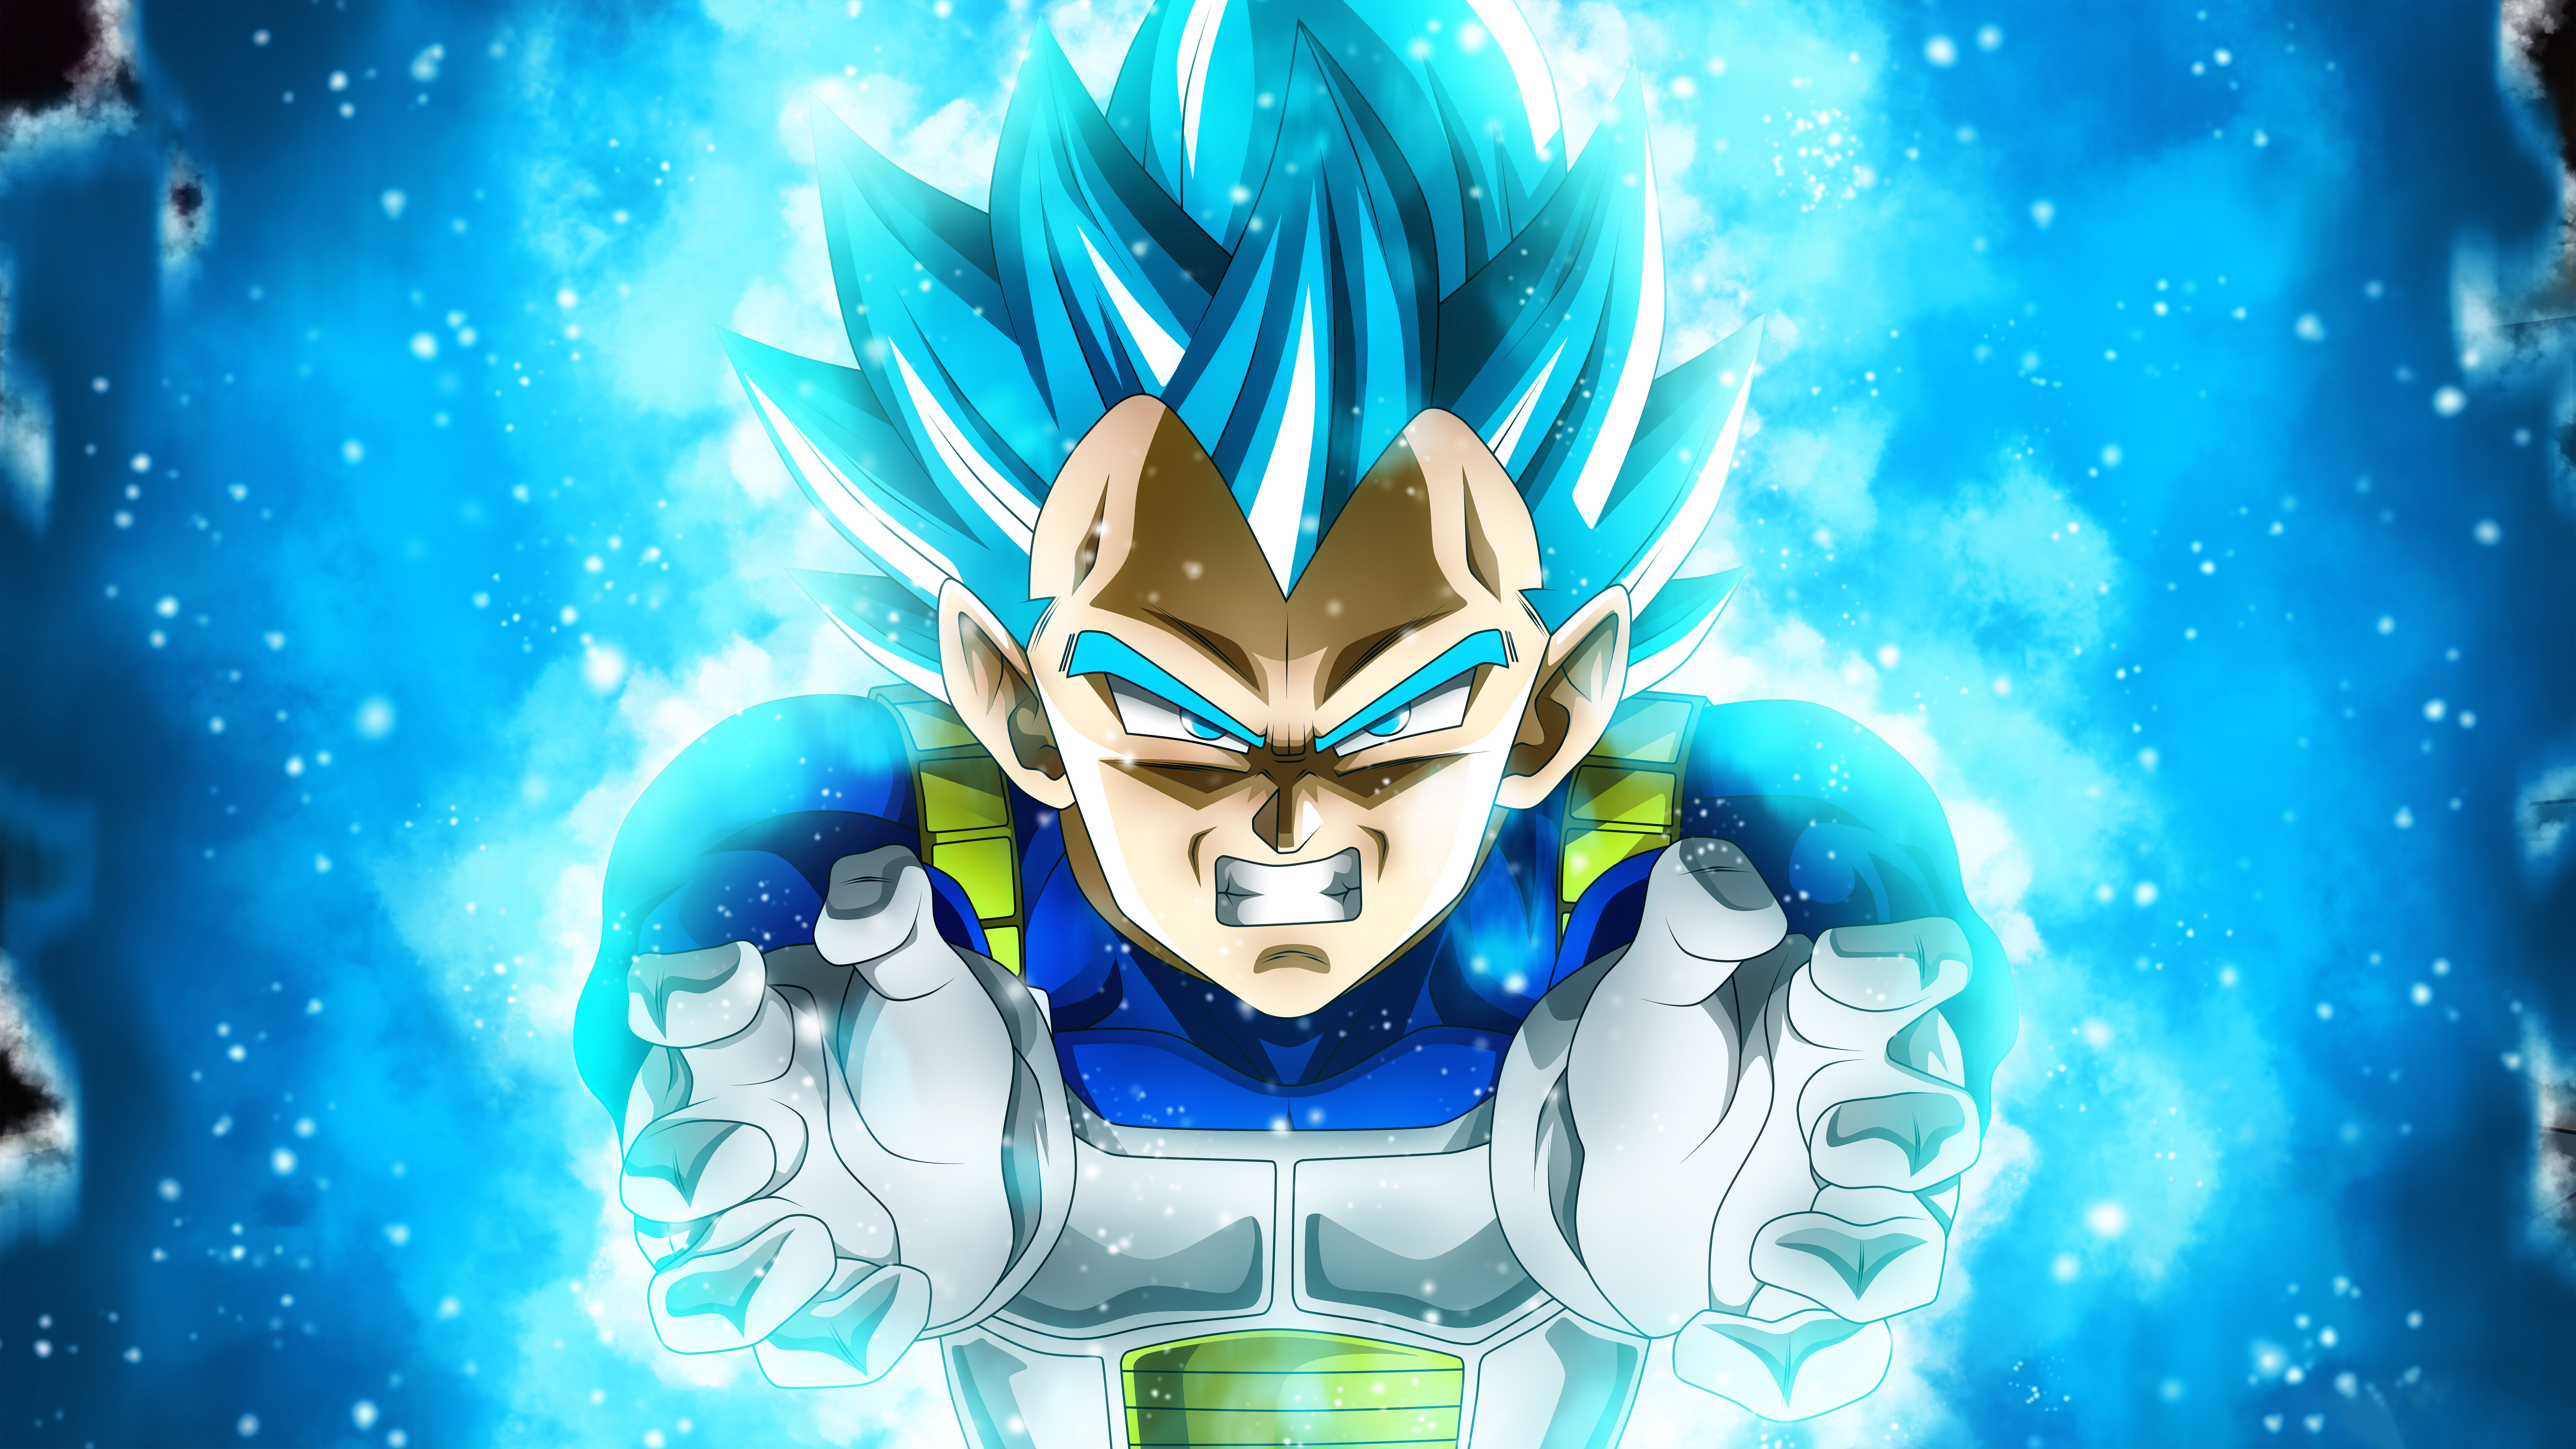 Dragon Ball Super 8k Hd Anime 4k Wallpapers Images Backgrounds